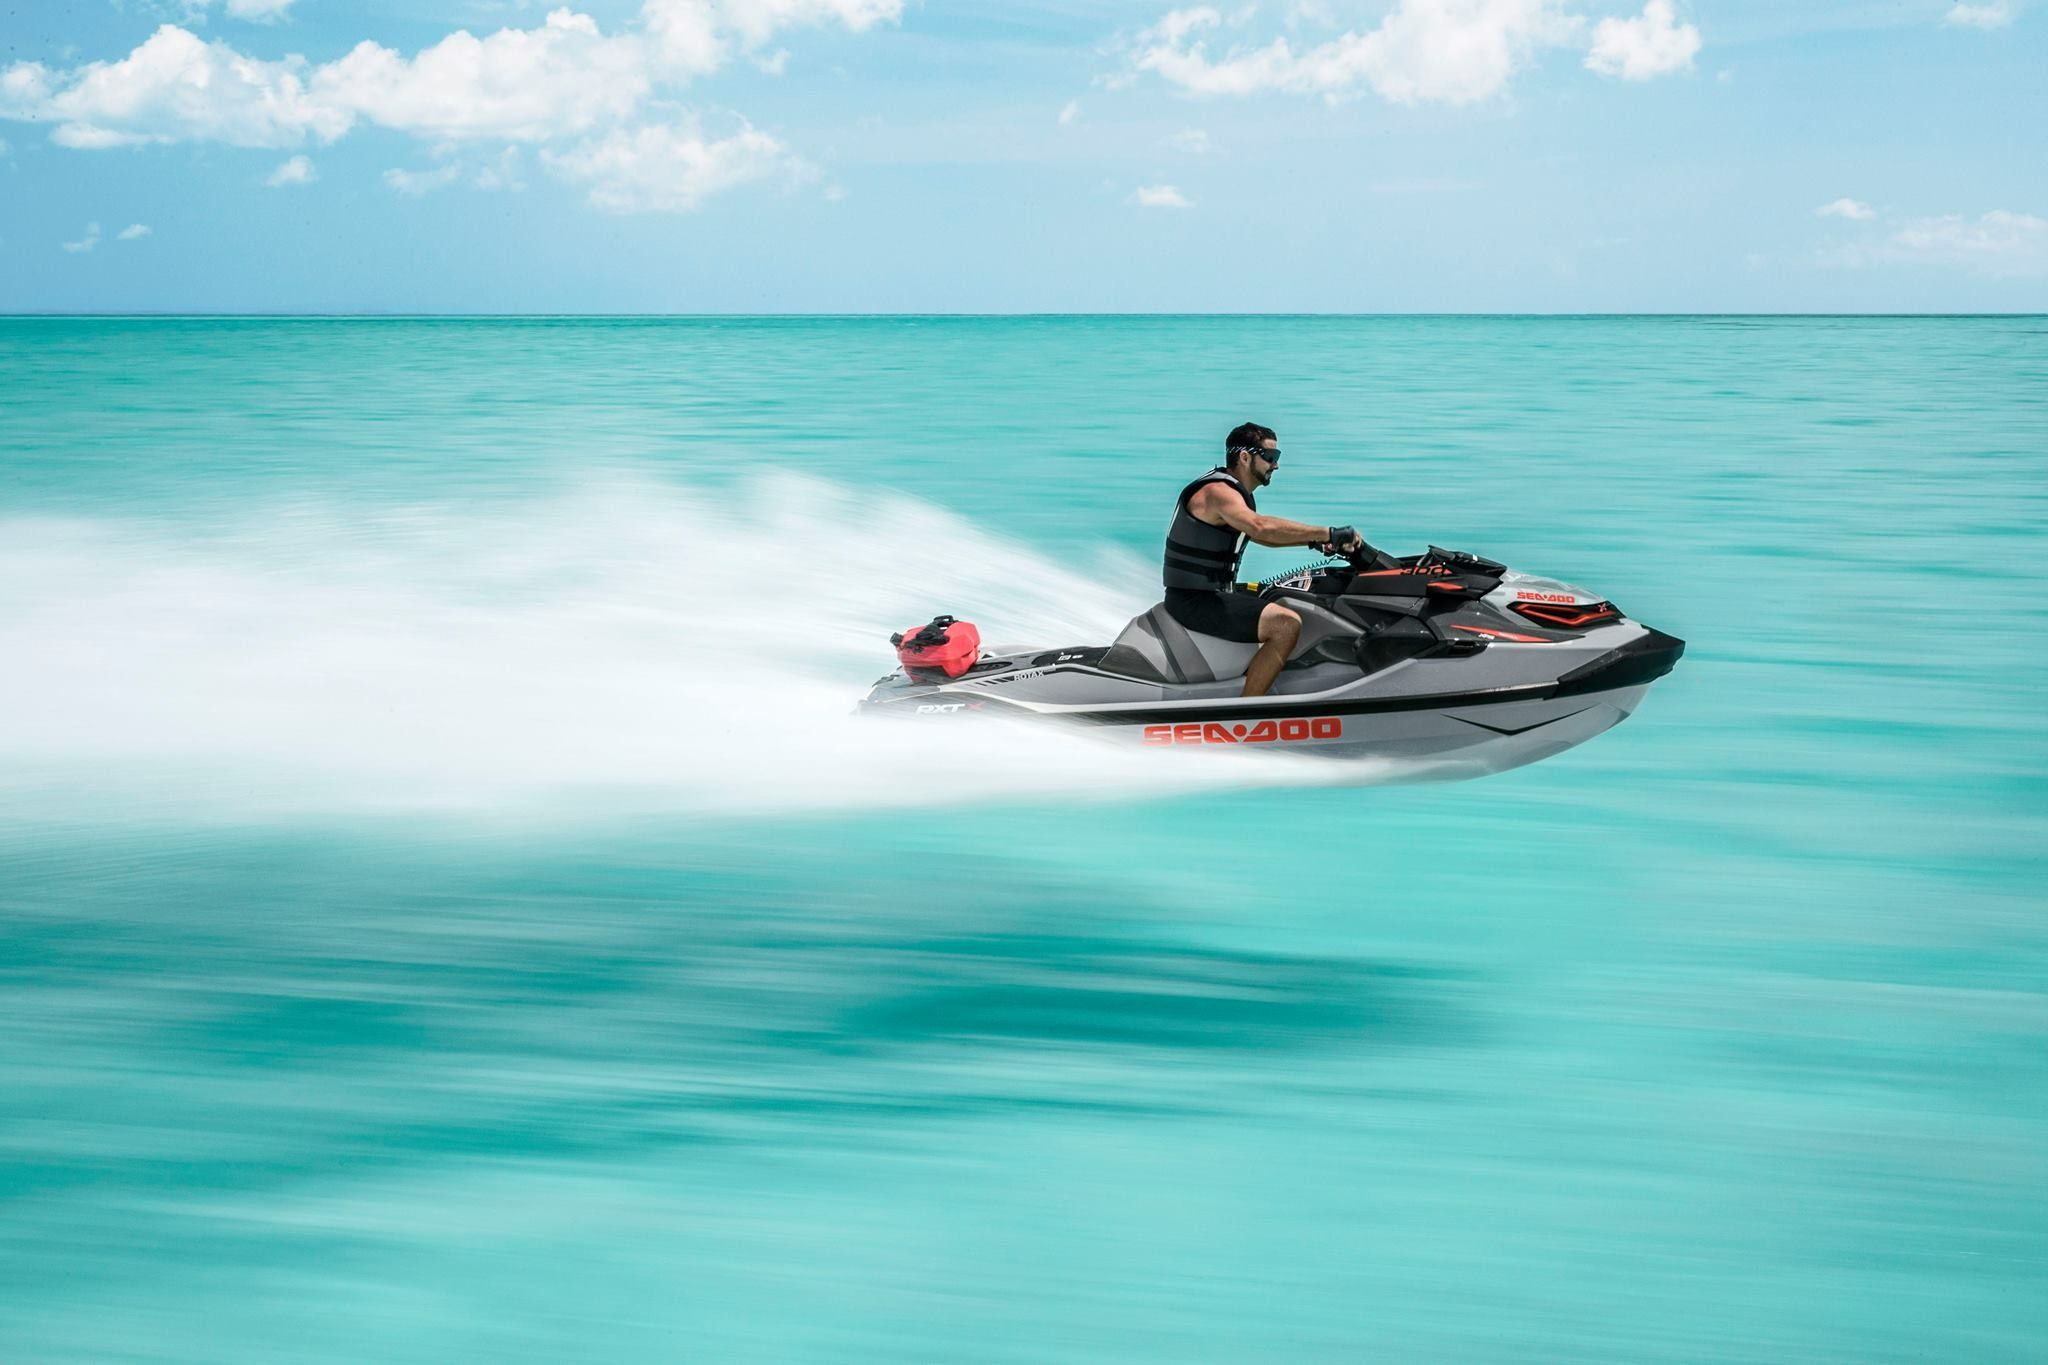 Get your #seadoo #water #ocean #riding #watercraft #fast